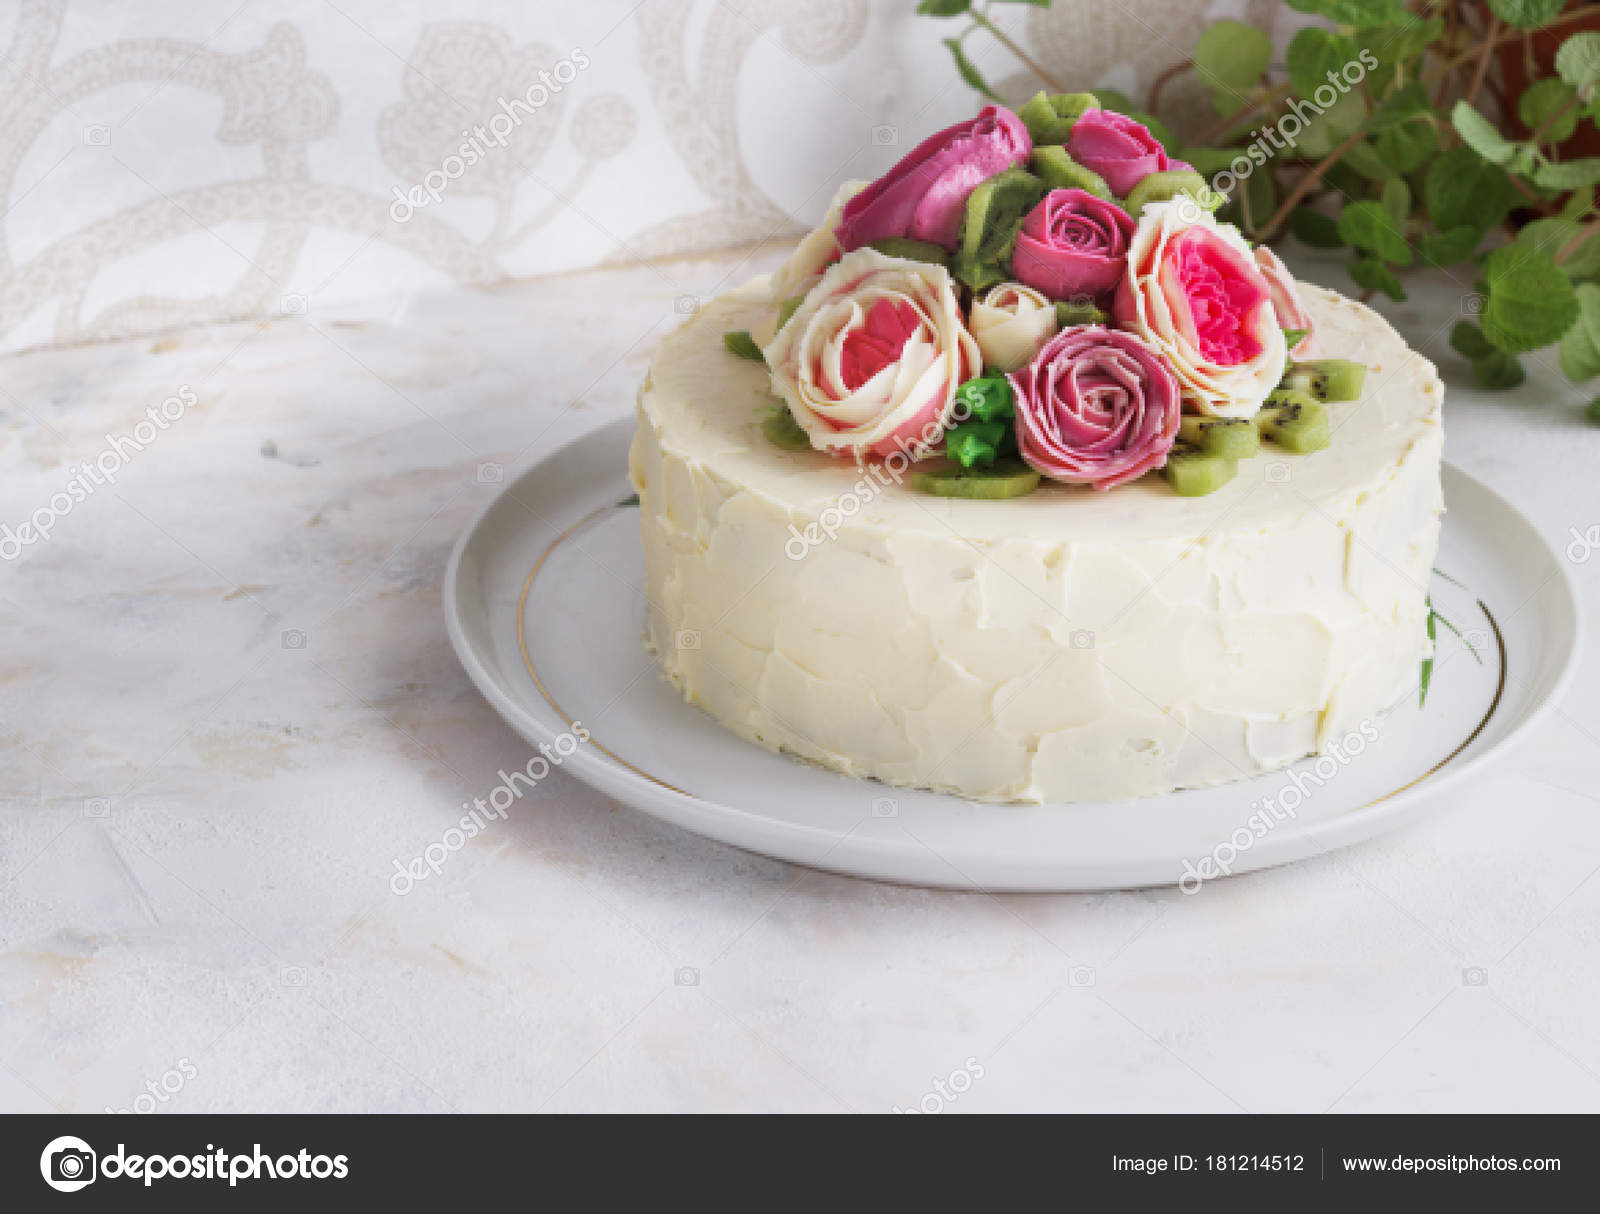 Enjoyable Images Cakes With Flowers Birthday Cake With Flowers Rose On Personalised Birthday Cards Cominlily Jamesorg